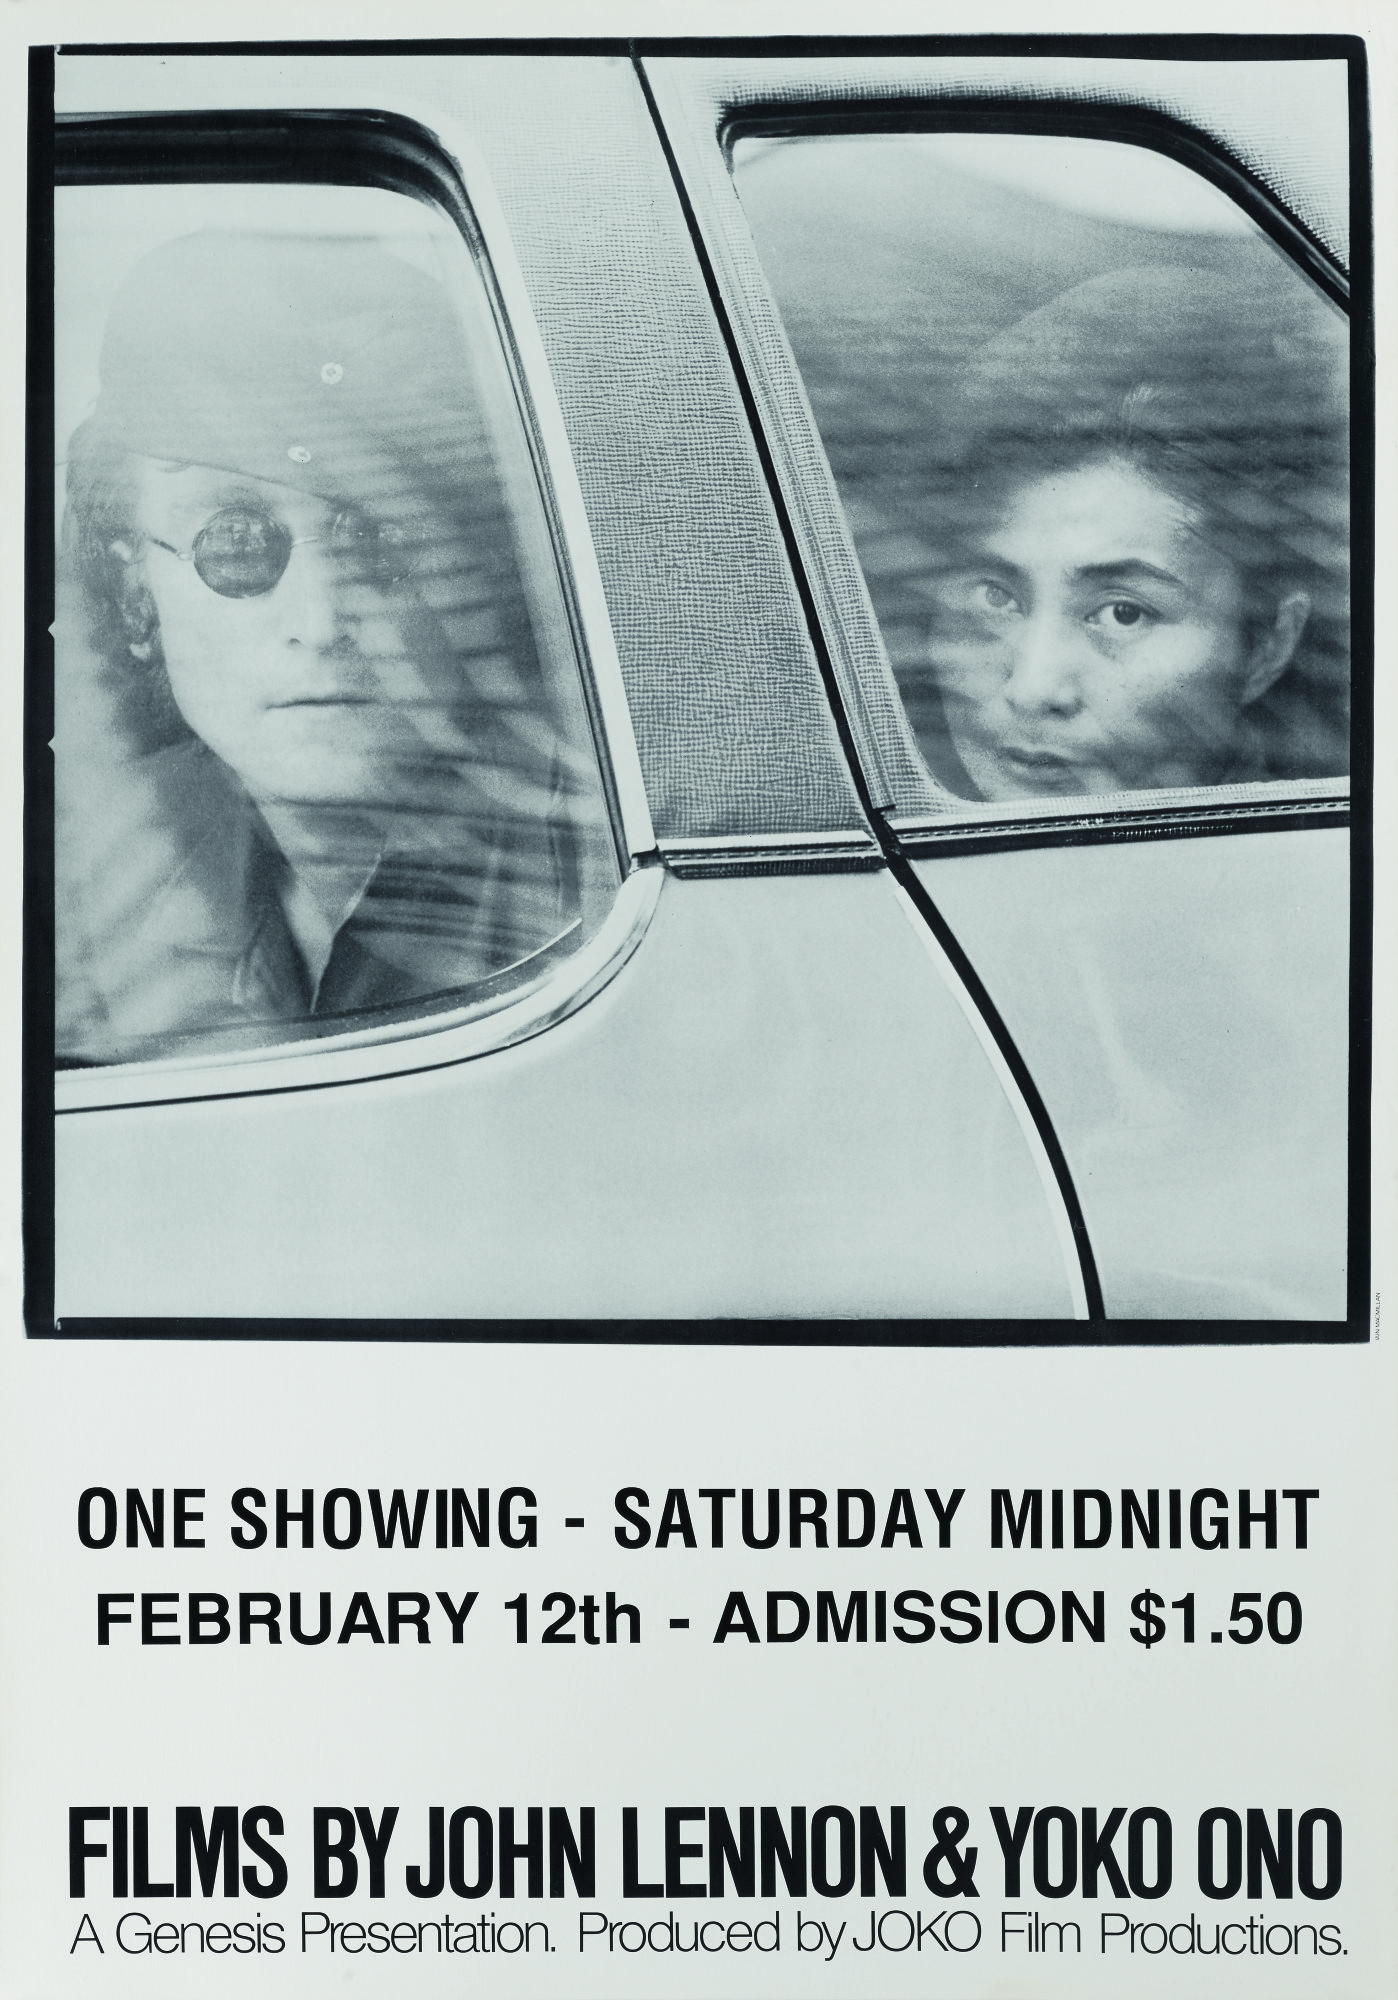 Films By John Lennon Yoko Ono 1972 Poster Us Original Film Posters Online Collectibles Sotheby S